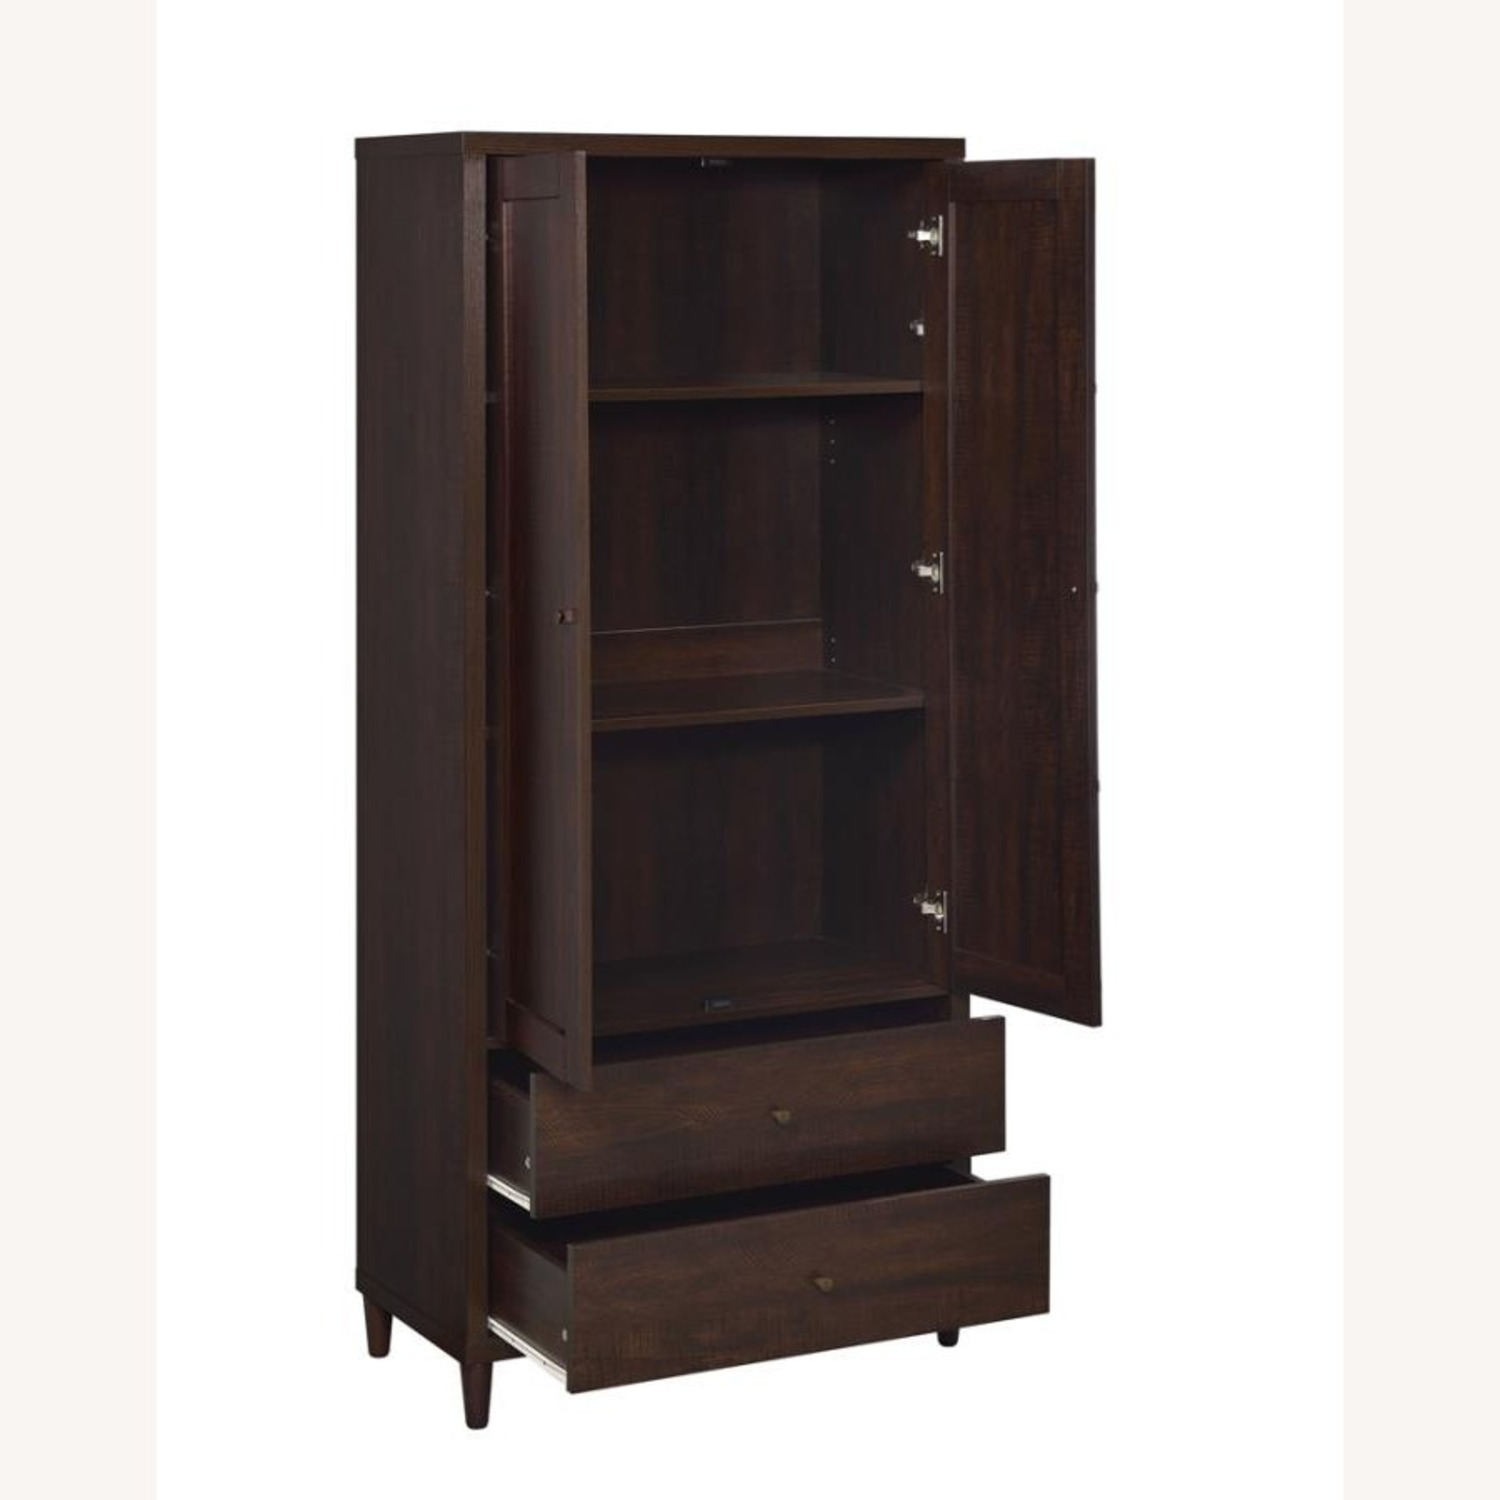 Accent Cabinet In Rich Rustic Tobacco Finish - image-2